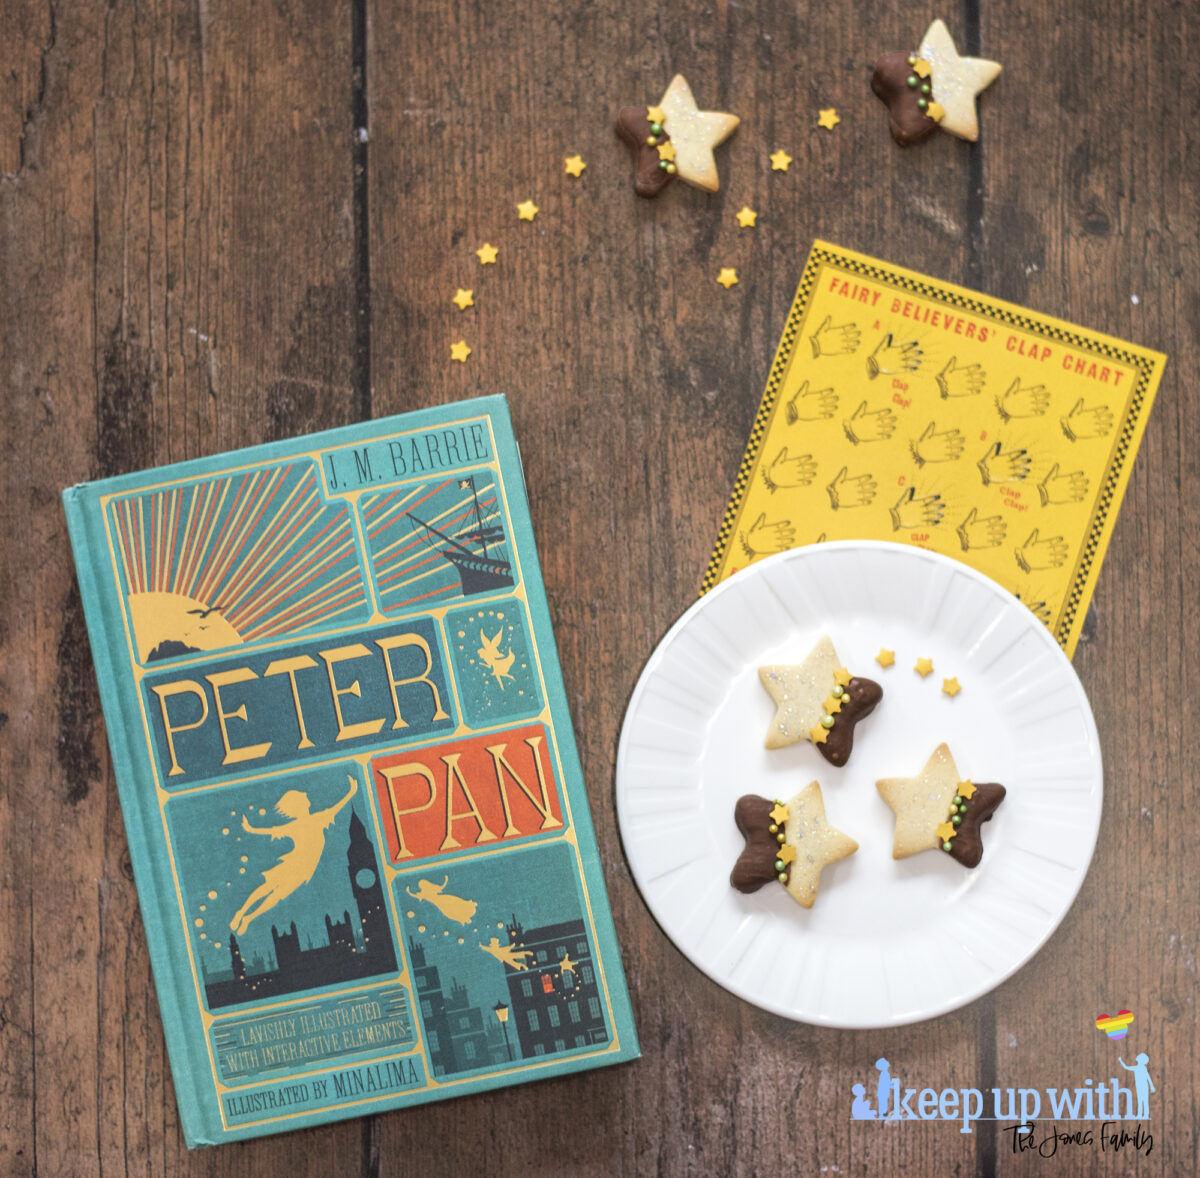 Image shows a wooden tabletop with a copy of J M Barrie's Peter Pan, a small white Vera Wang Wedgewood plate and a fairy clapping chart,  On the table are small star shaped biscuits. Half of each Peter Pan Second Star to the Right Biscuit is dipped in chocolate and  the other is sprinkled with silver edible glitter.  The dividing line is decorated with yellow star sprinkles and green pearl shaped sprinkles. Image by Keep Up With The Jones Family